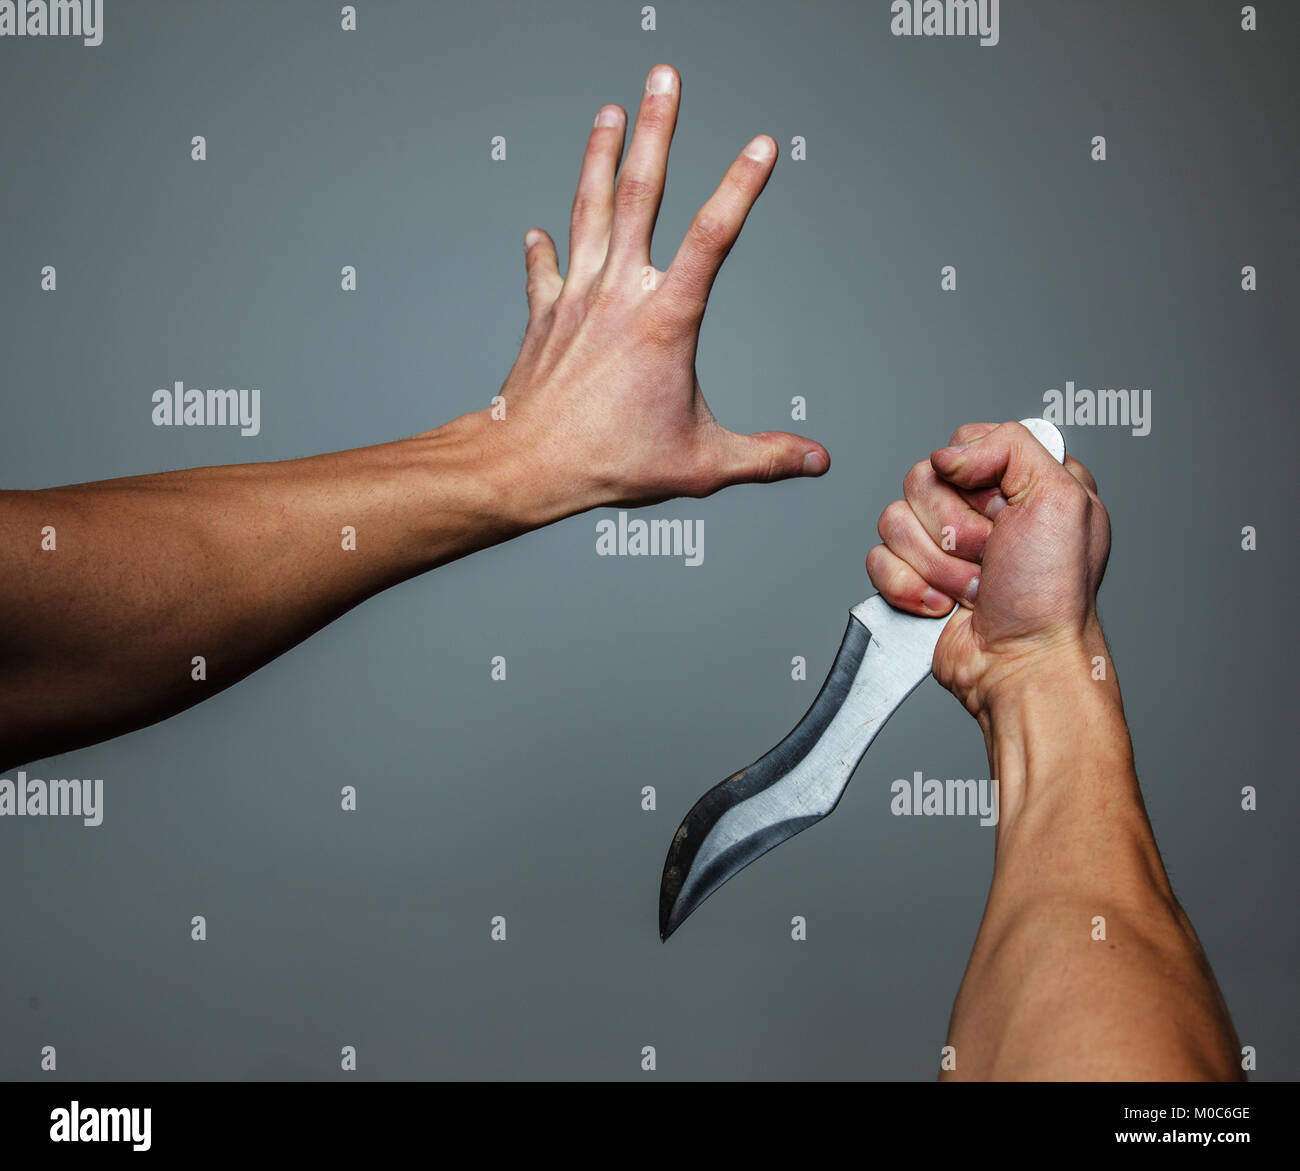 Arms with knife. Stock Photo